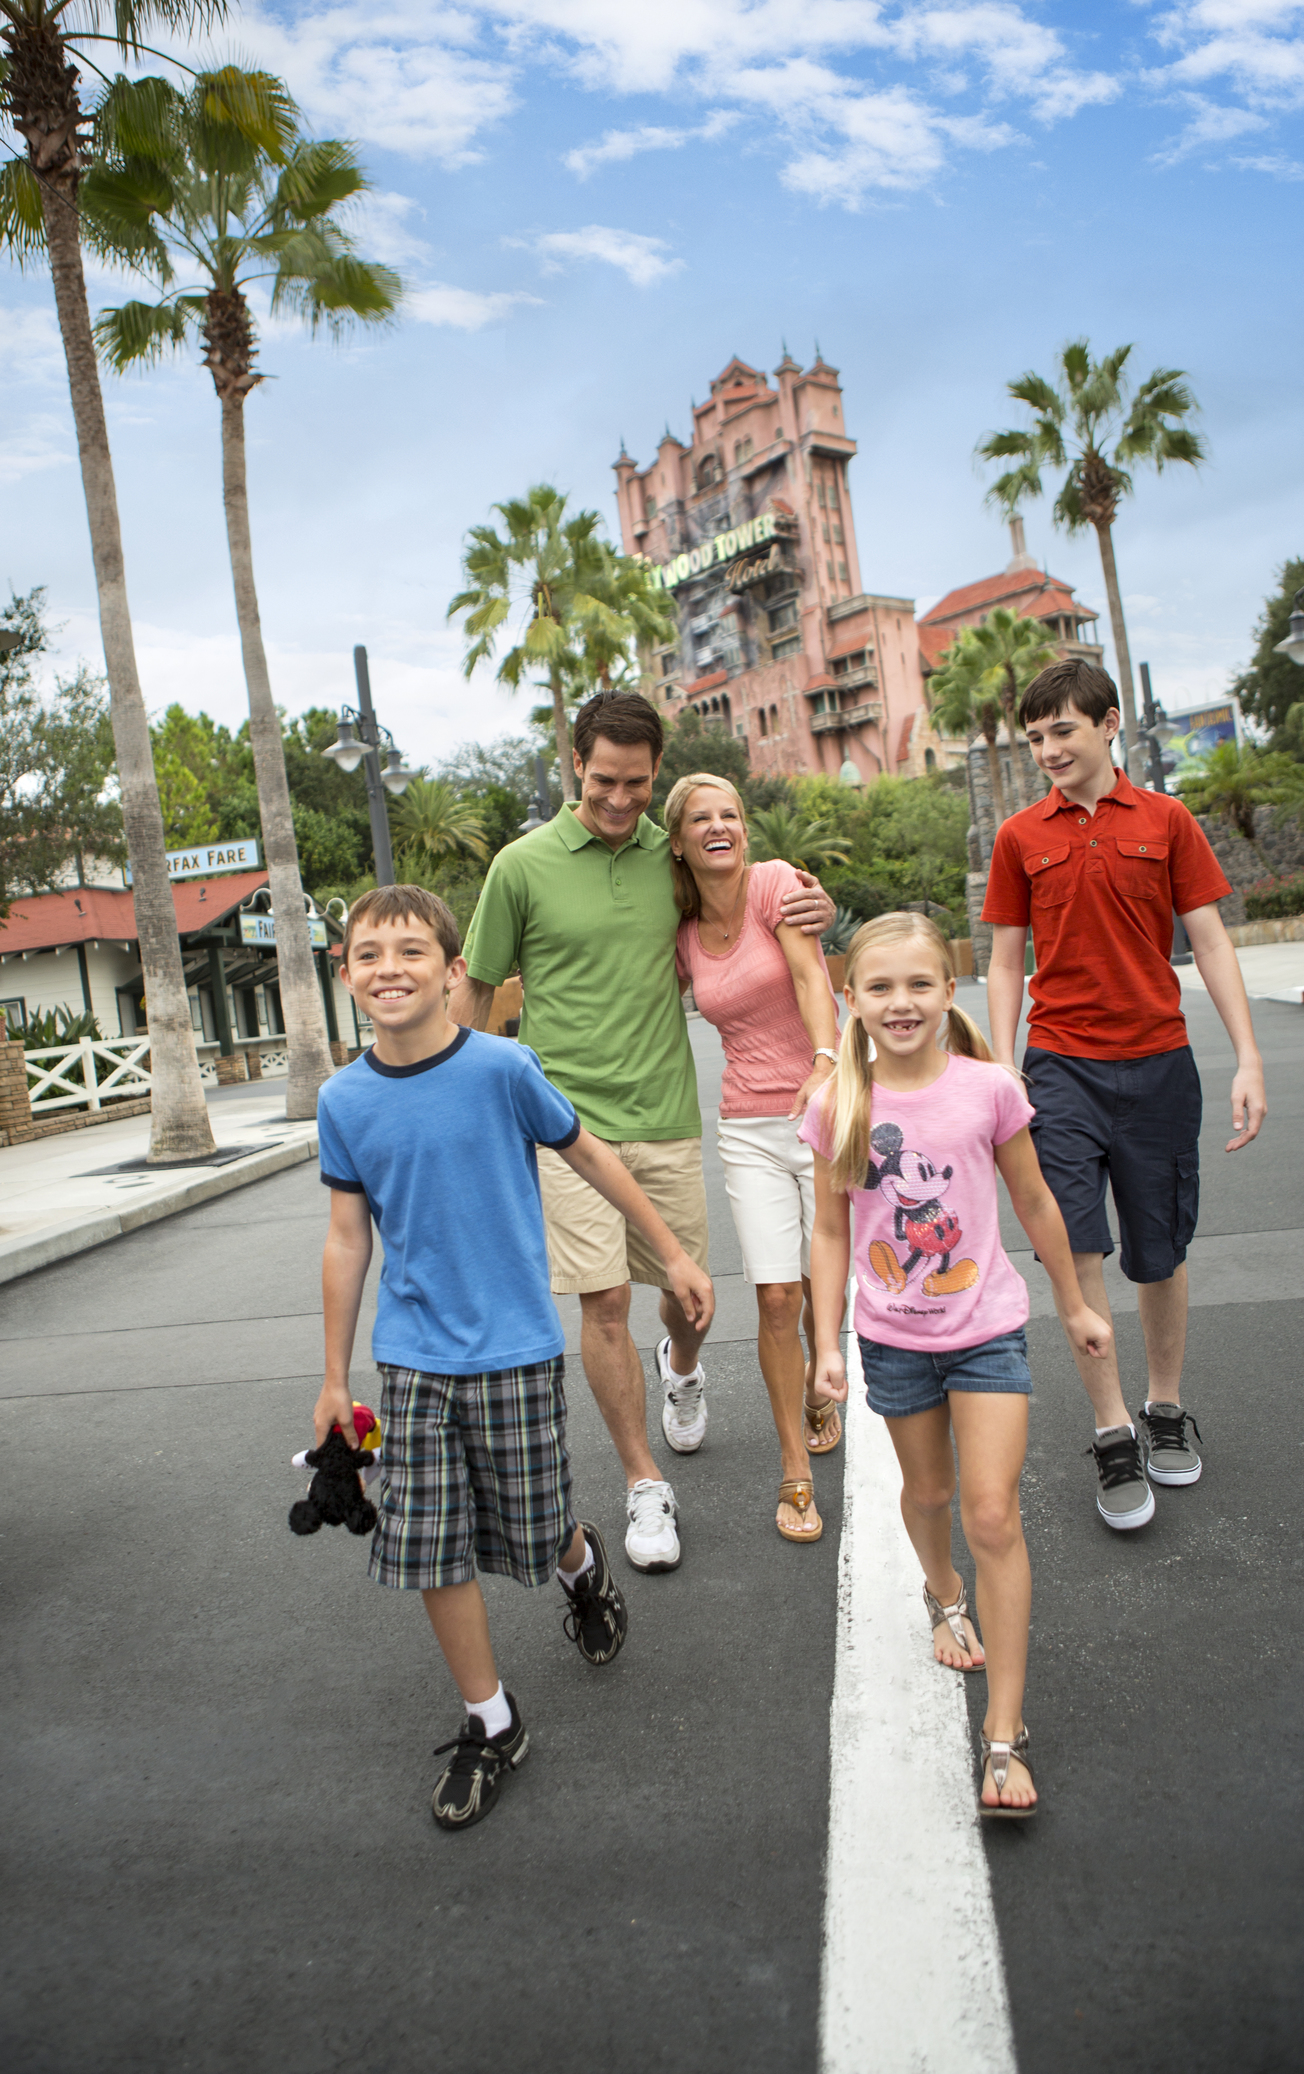 A Family walks outside the Tower of Terror